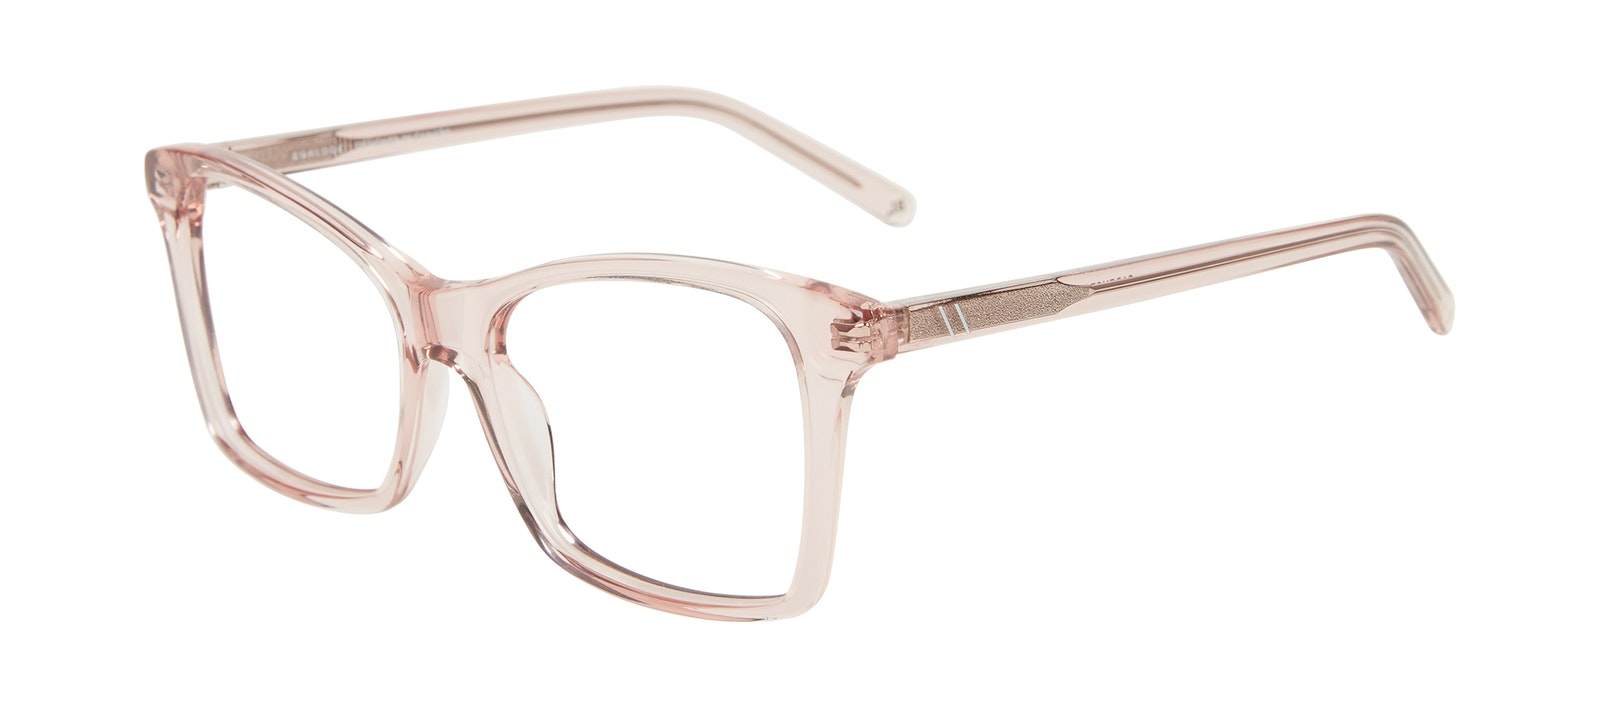 Affordable Fashion Glasses Square Eyeglasses Women Cadence Pink Tilt